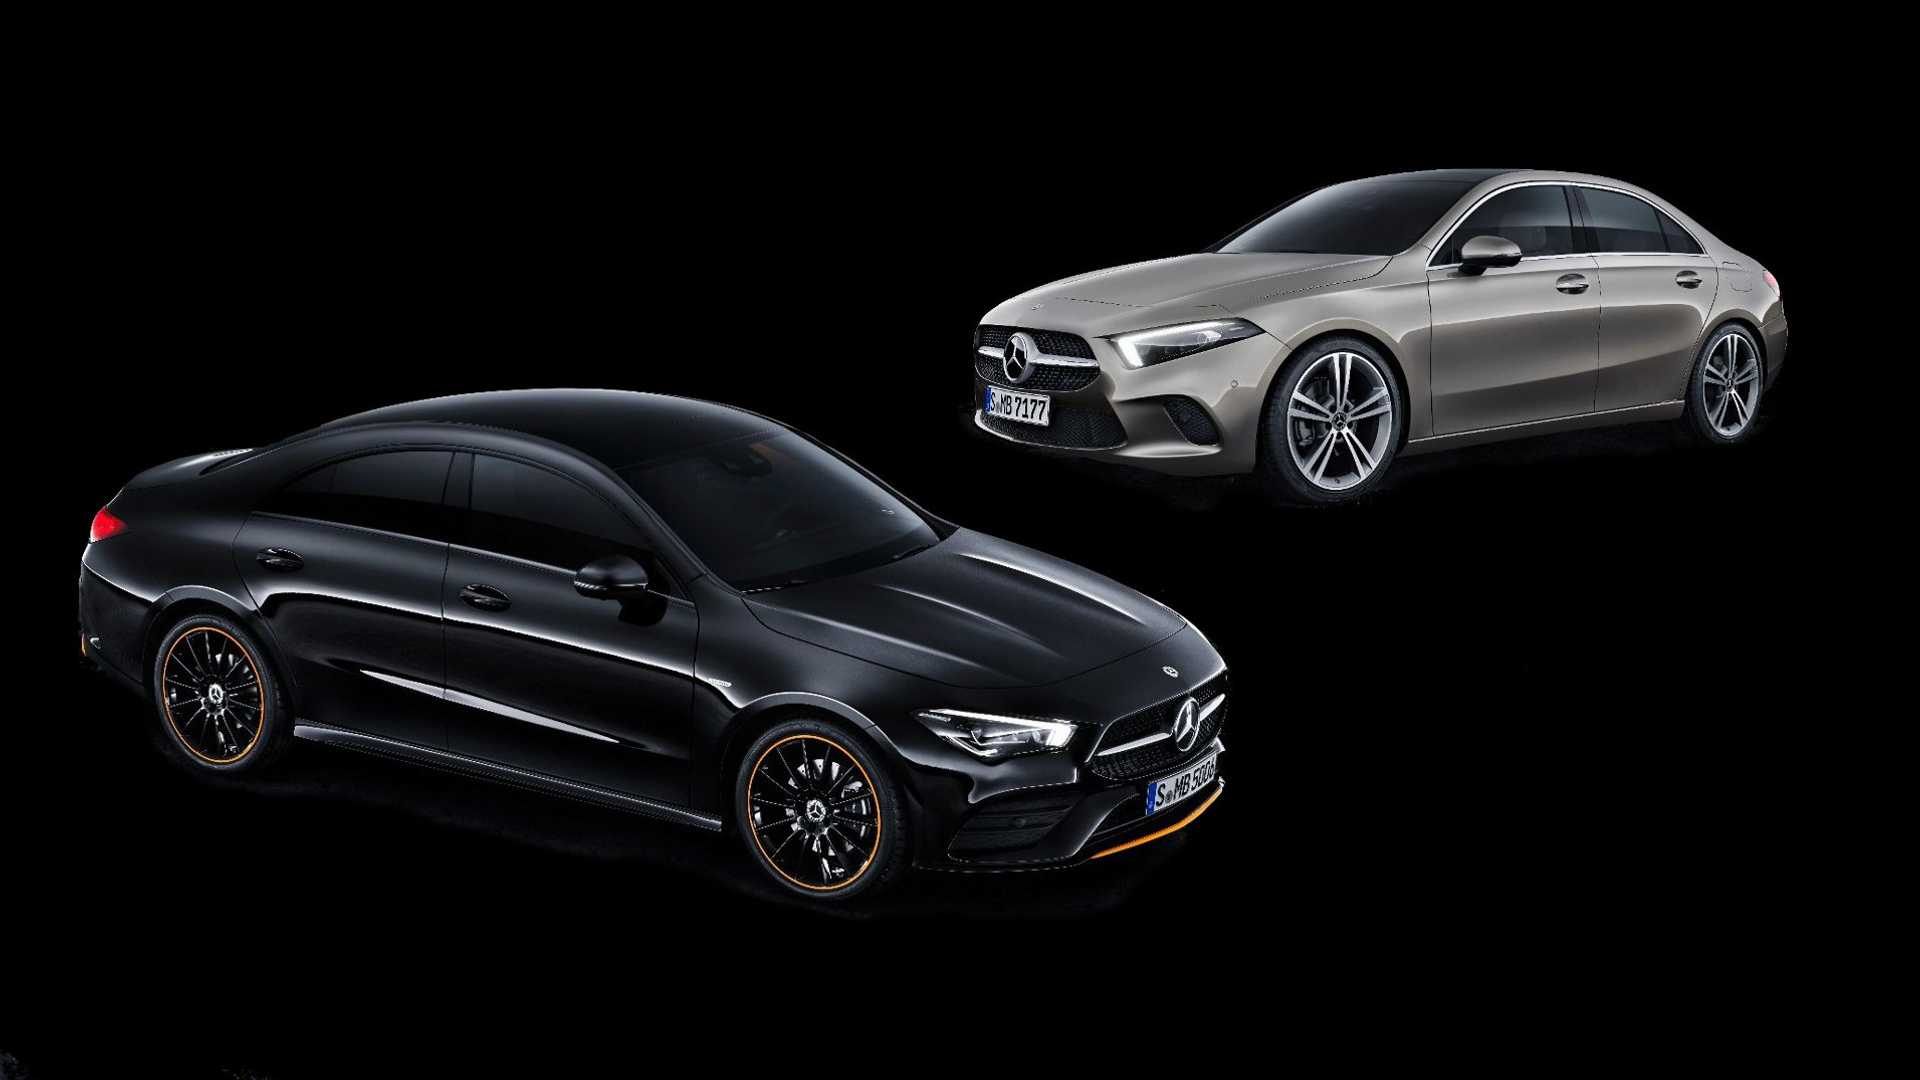 Mercedes Benz A Class Sedan Vs Cla See The Changes